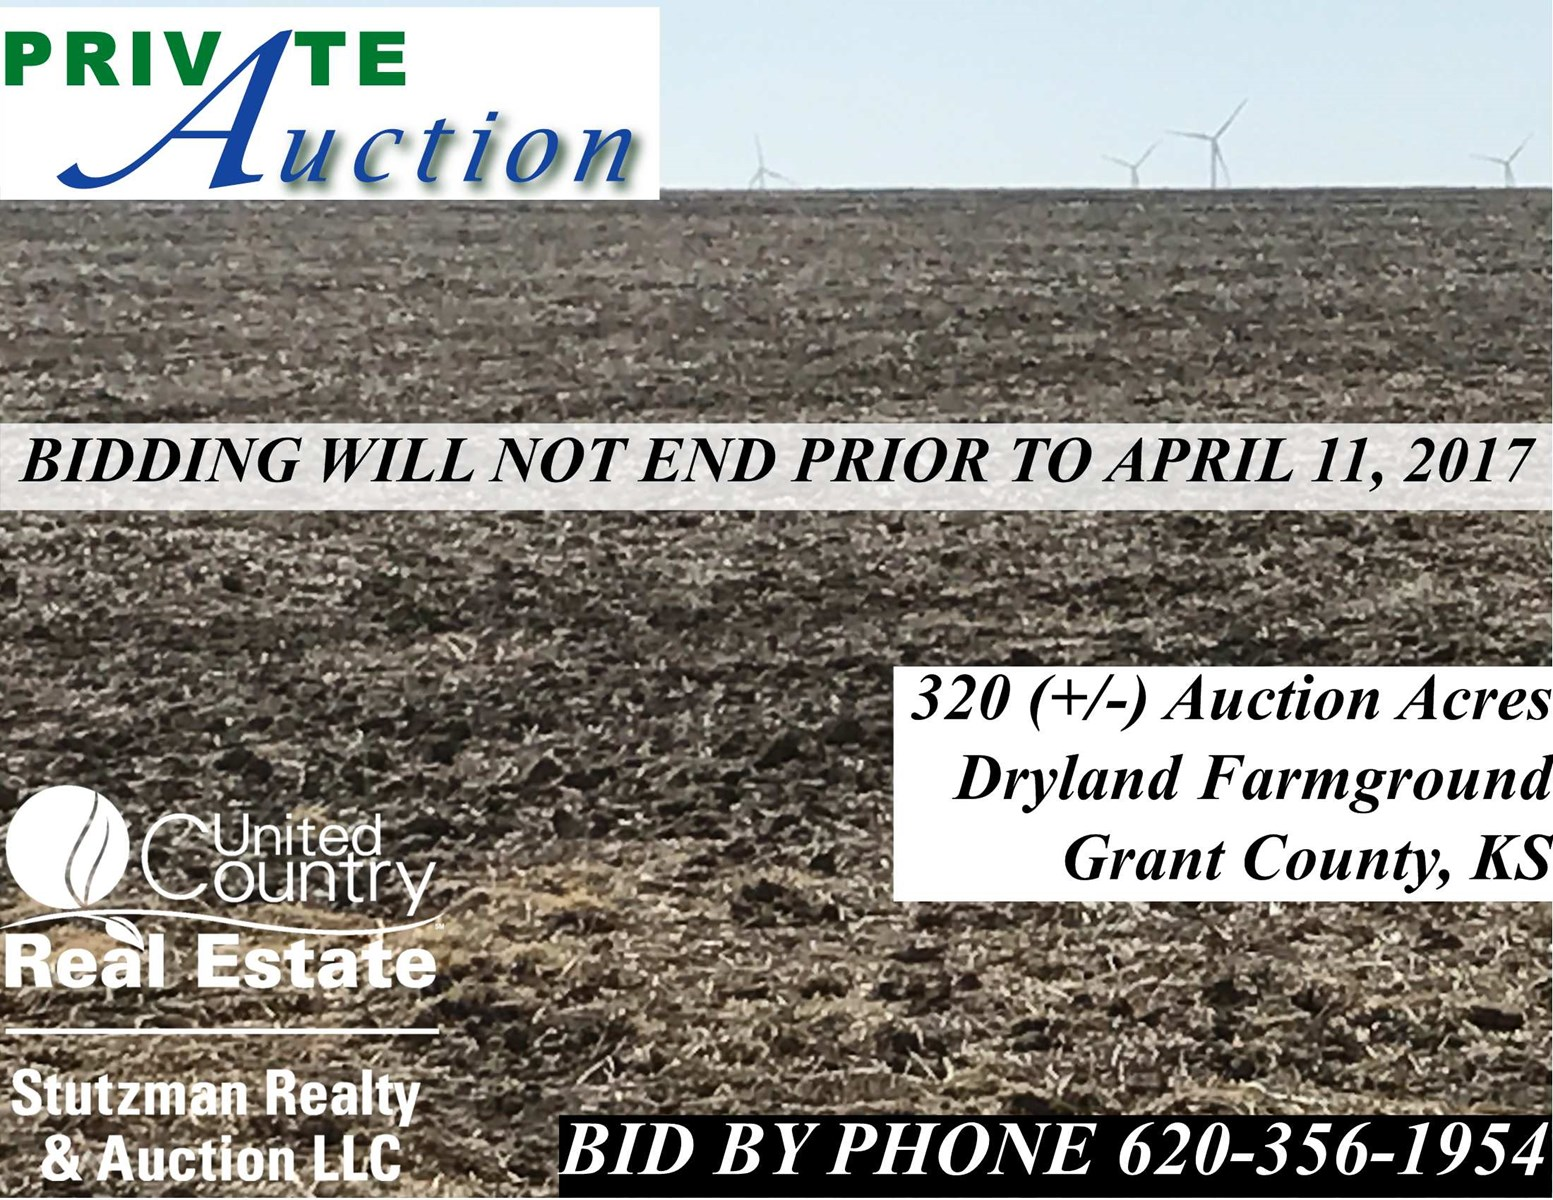 320 +/- Acres of Dryland Farmground in Grant County, Kansas